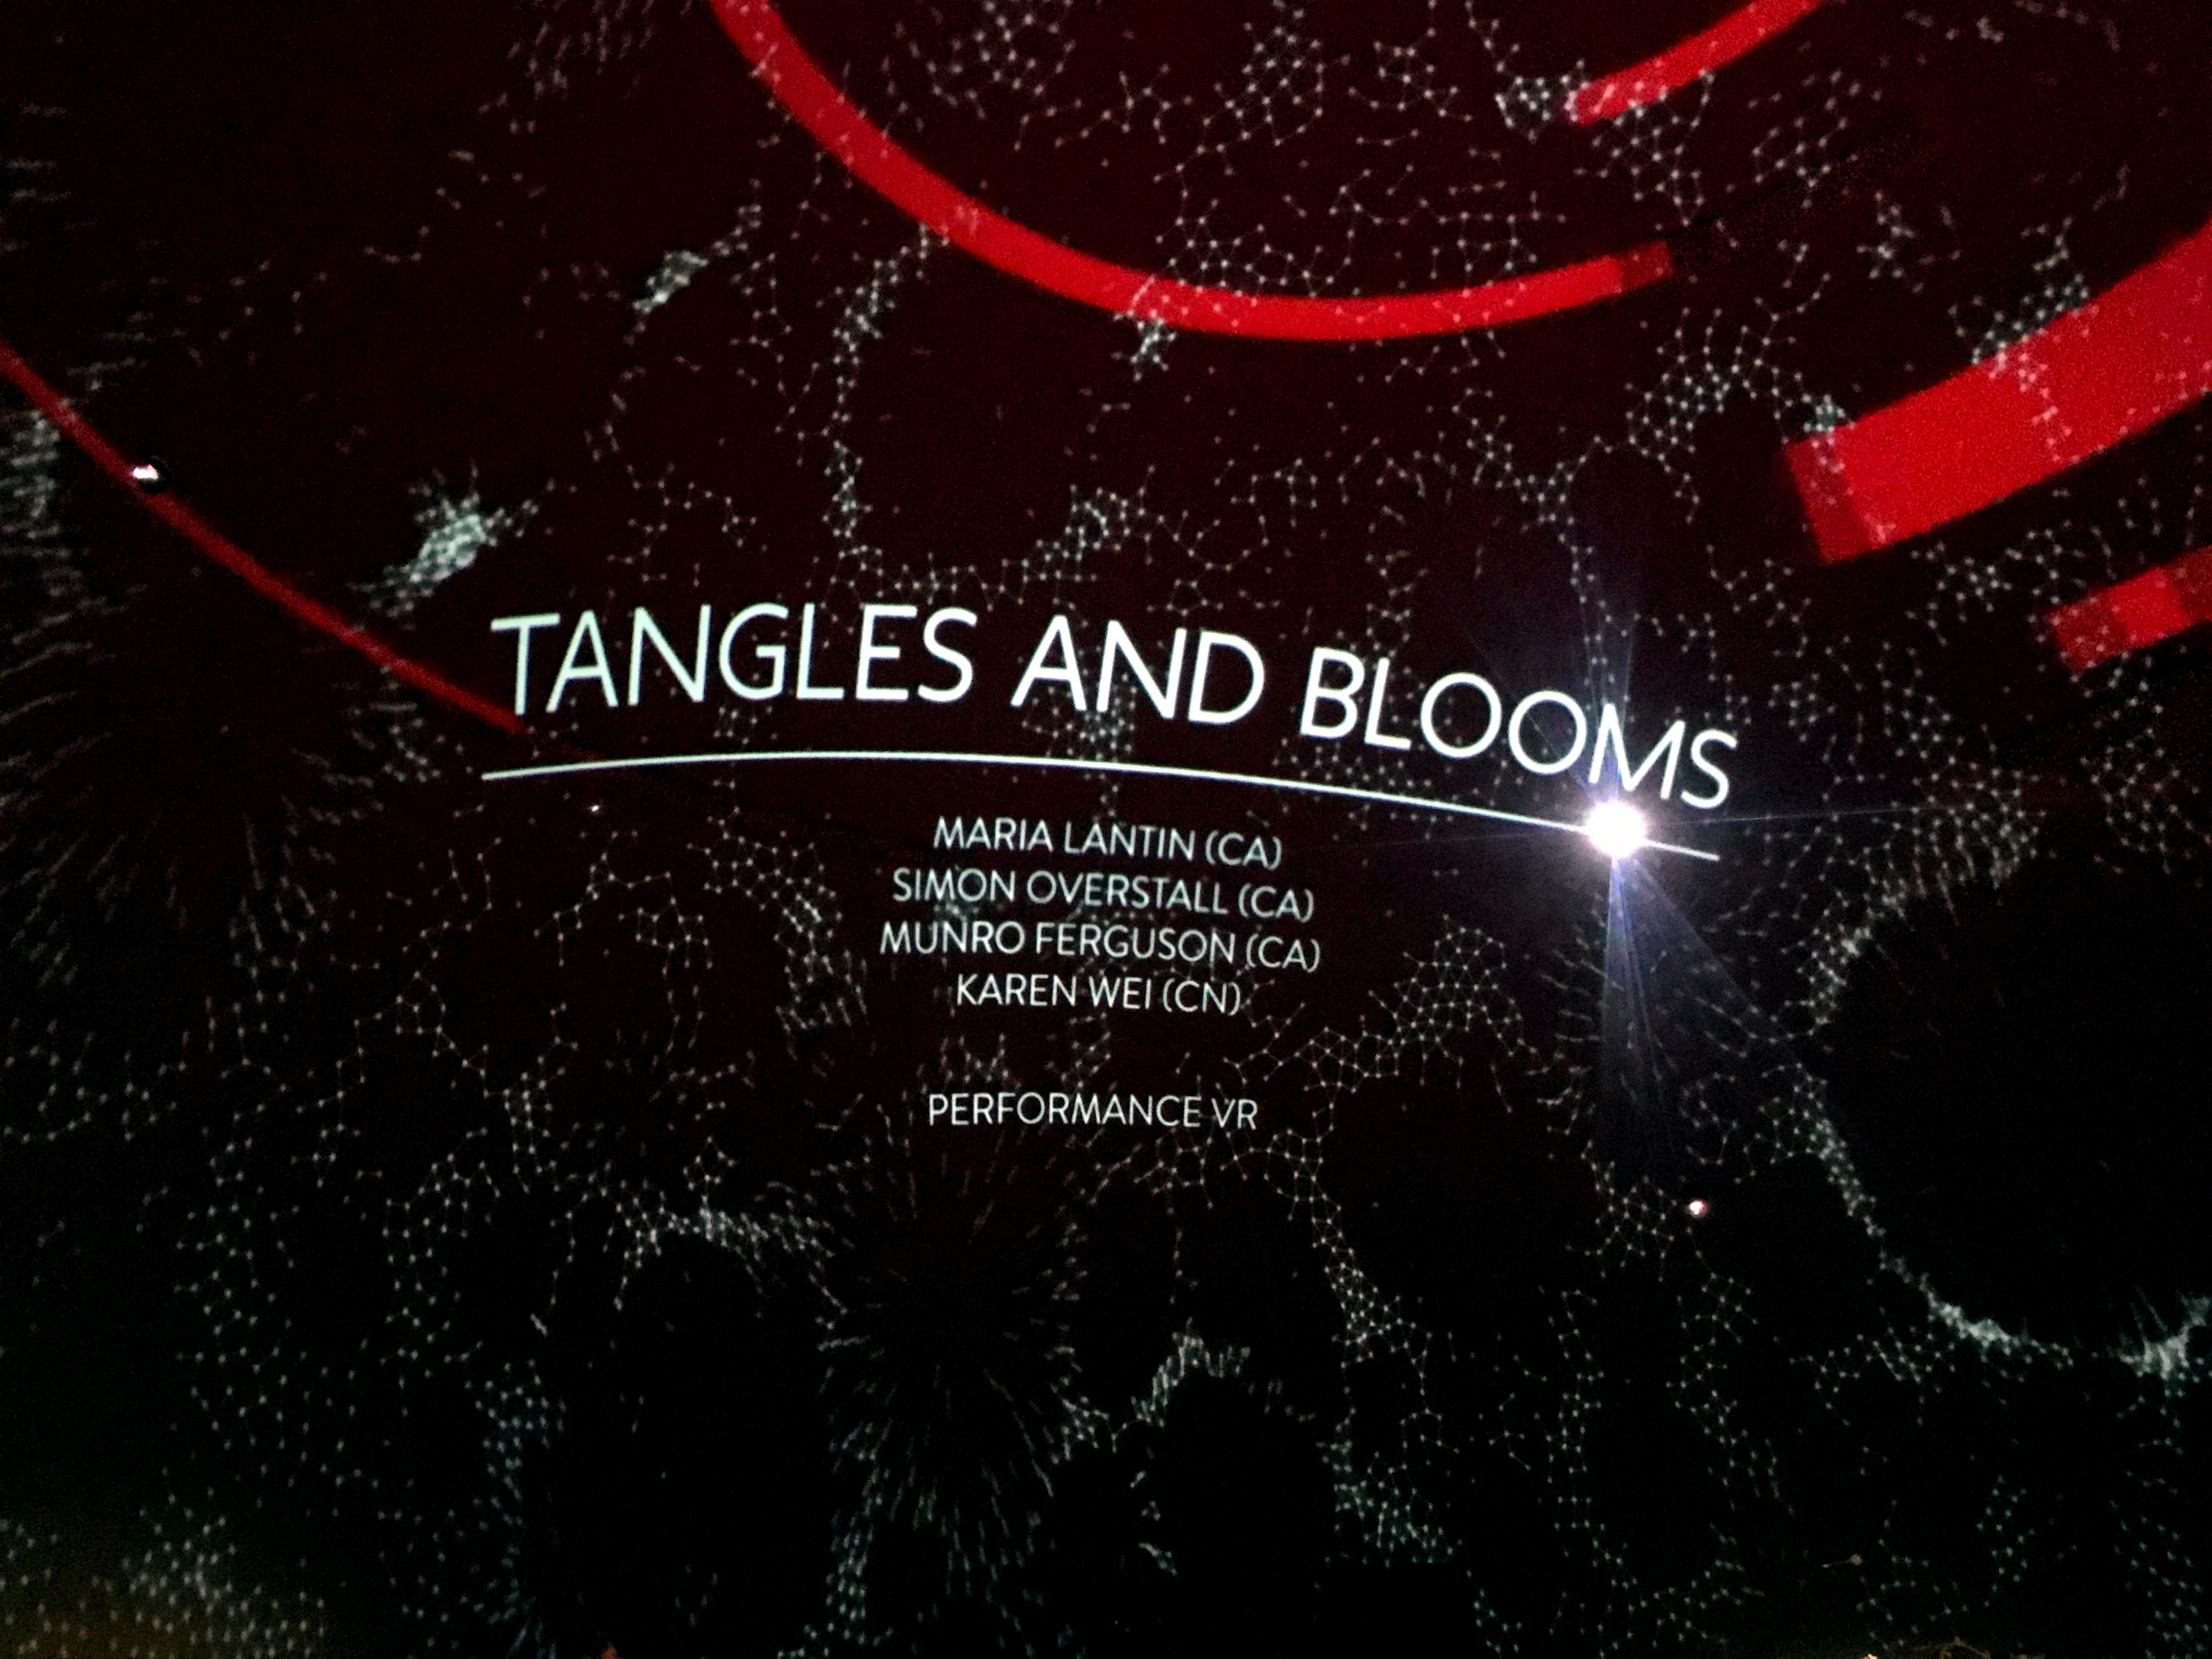 Title screen for Tangles and Blooms